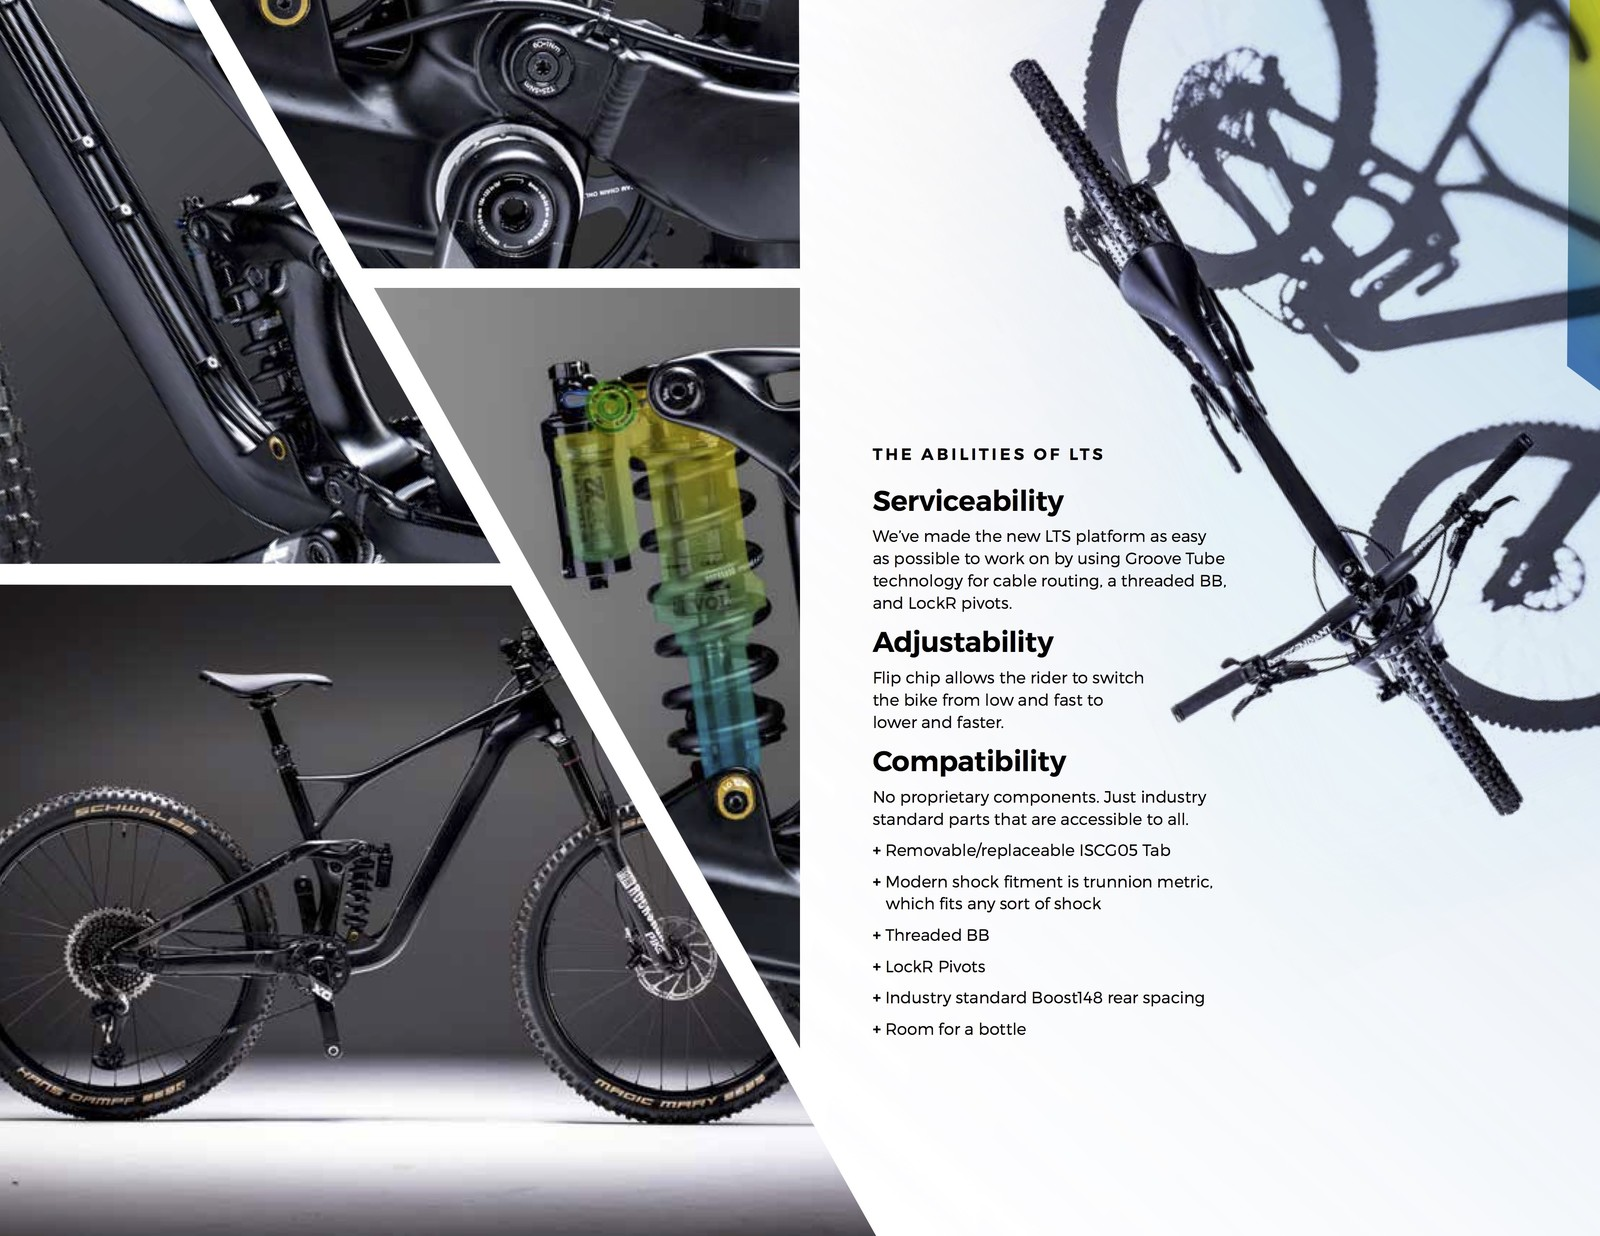 """d96e79a3a36 """"These bikes were designed around our updated LTS platform without using  any proprietary components,"""" said Cait Dooley, GT Bicycles Global Director  of ..."""